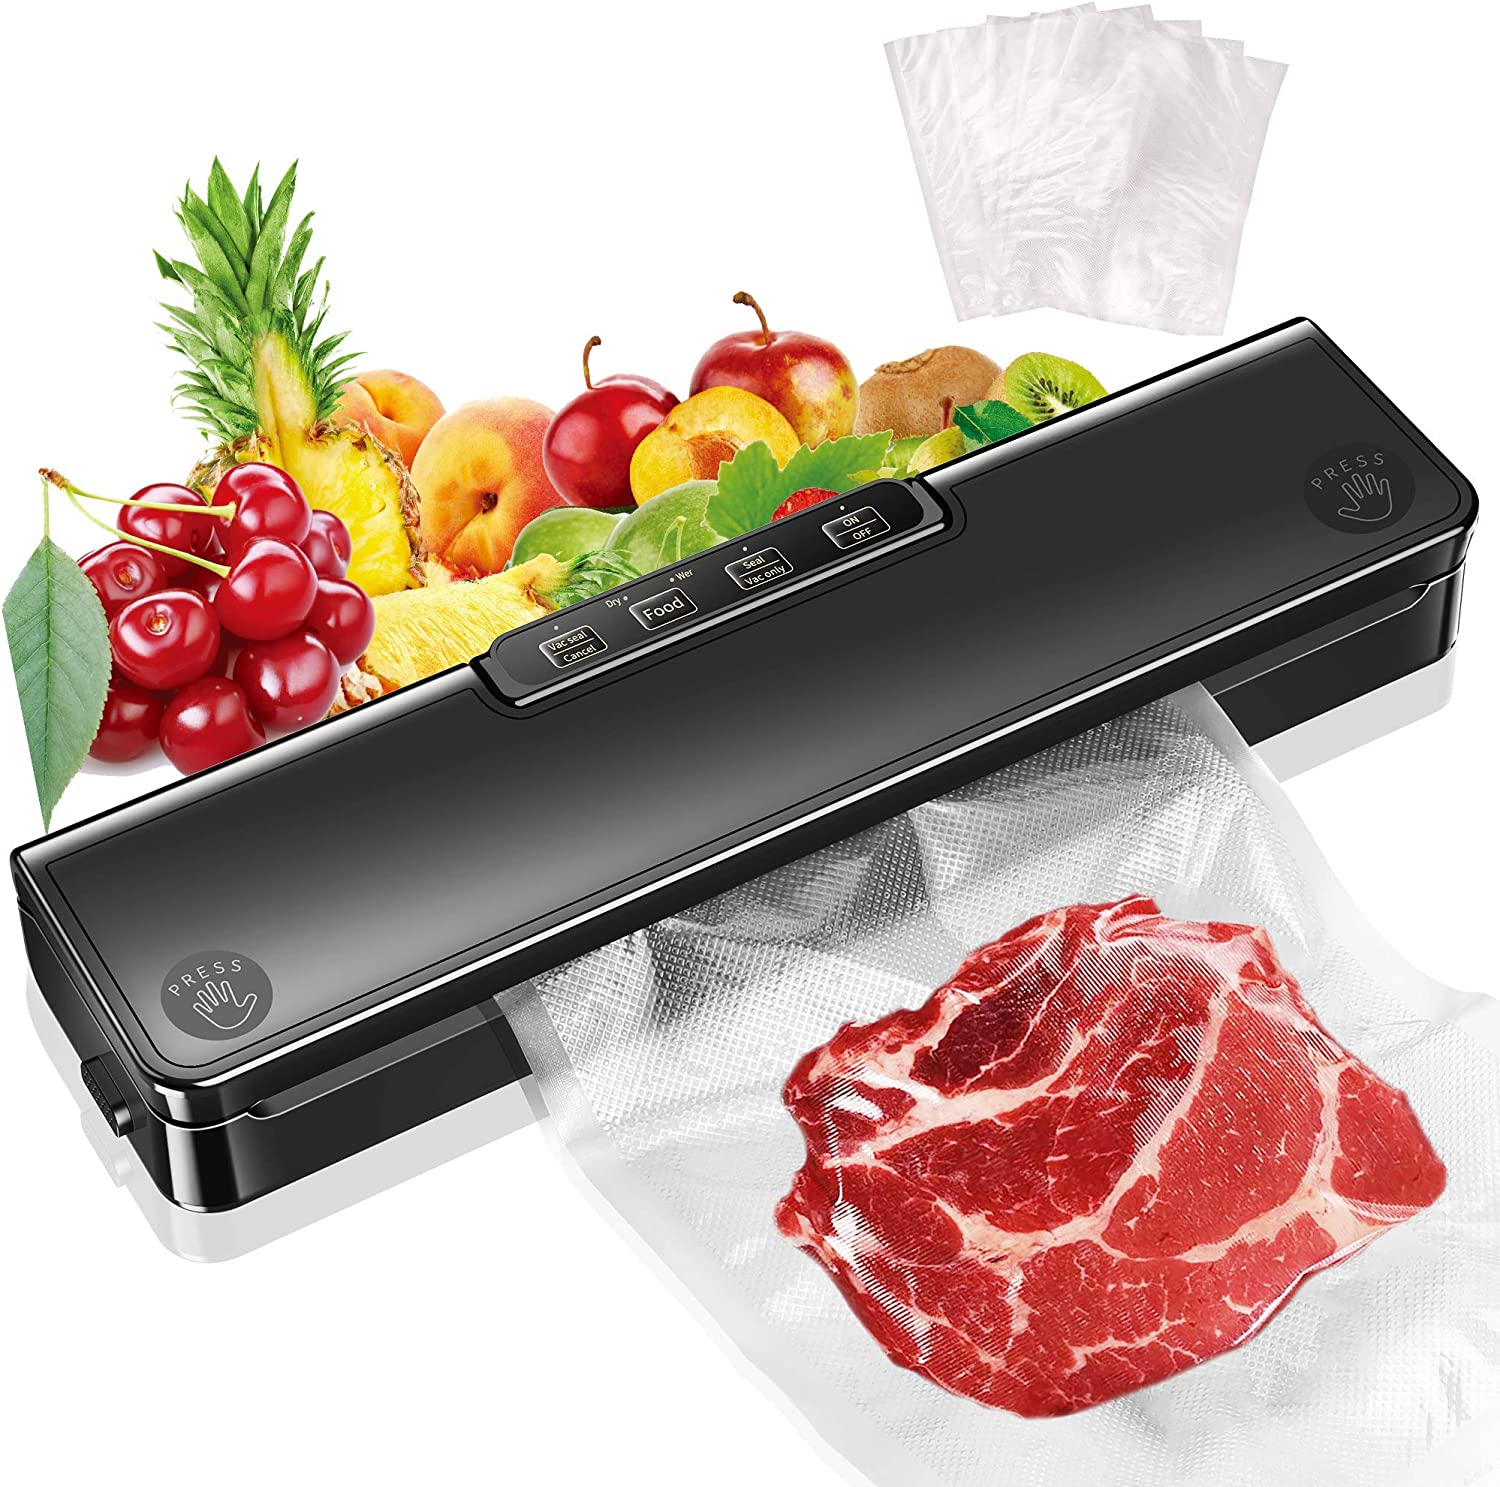 Vacuum Sealer Machine, Automatic Food Sealer for Food Saver Vacuum Sealer| Starter Kit|Dry & Moist Food Modes| Compact | Easy to Clean | Led Indicator Lights(15 Vacuum Sealing Bags)